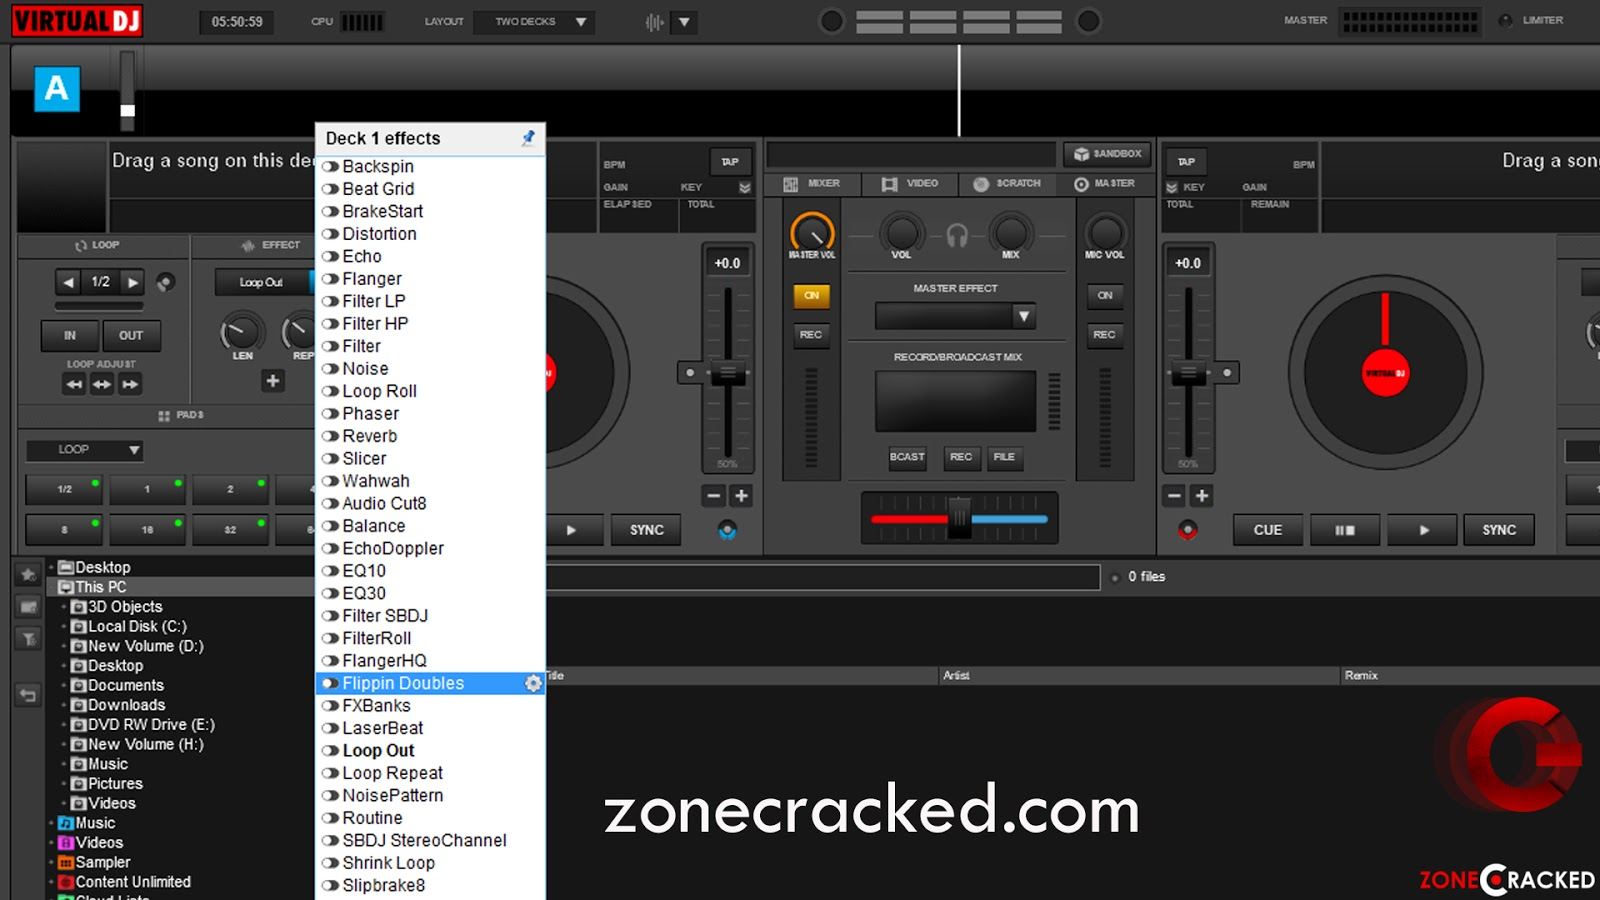 Virtual Dj 8 Audio and Video Effects Mega Pack | Zone Cracked